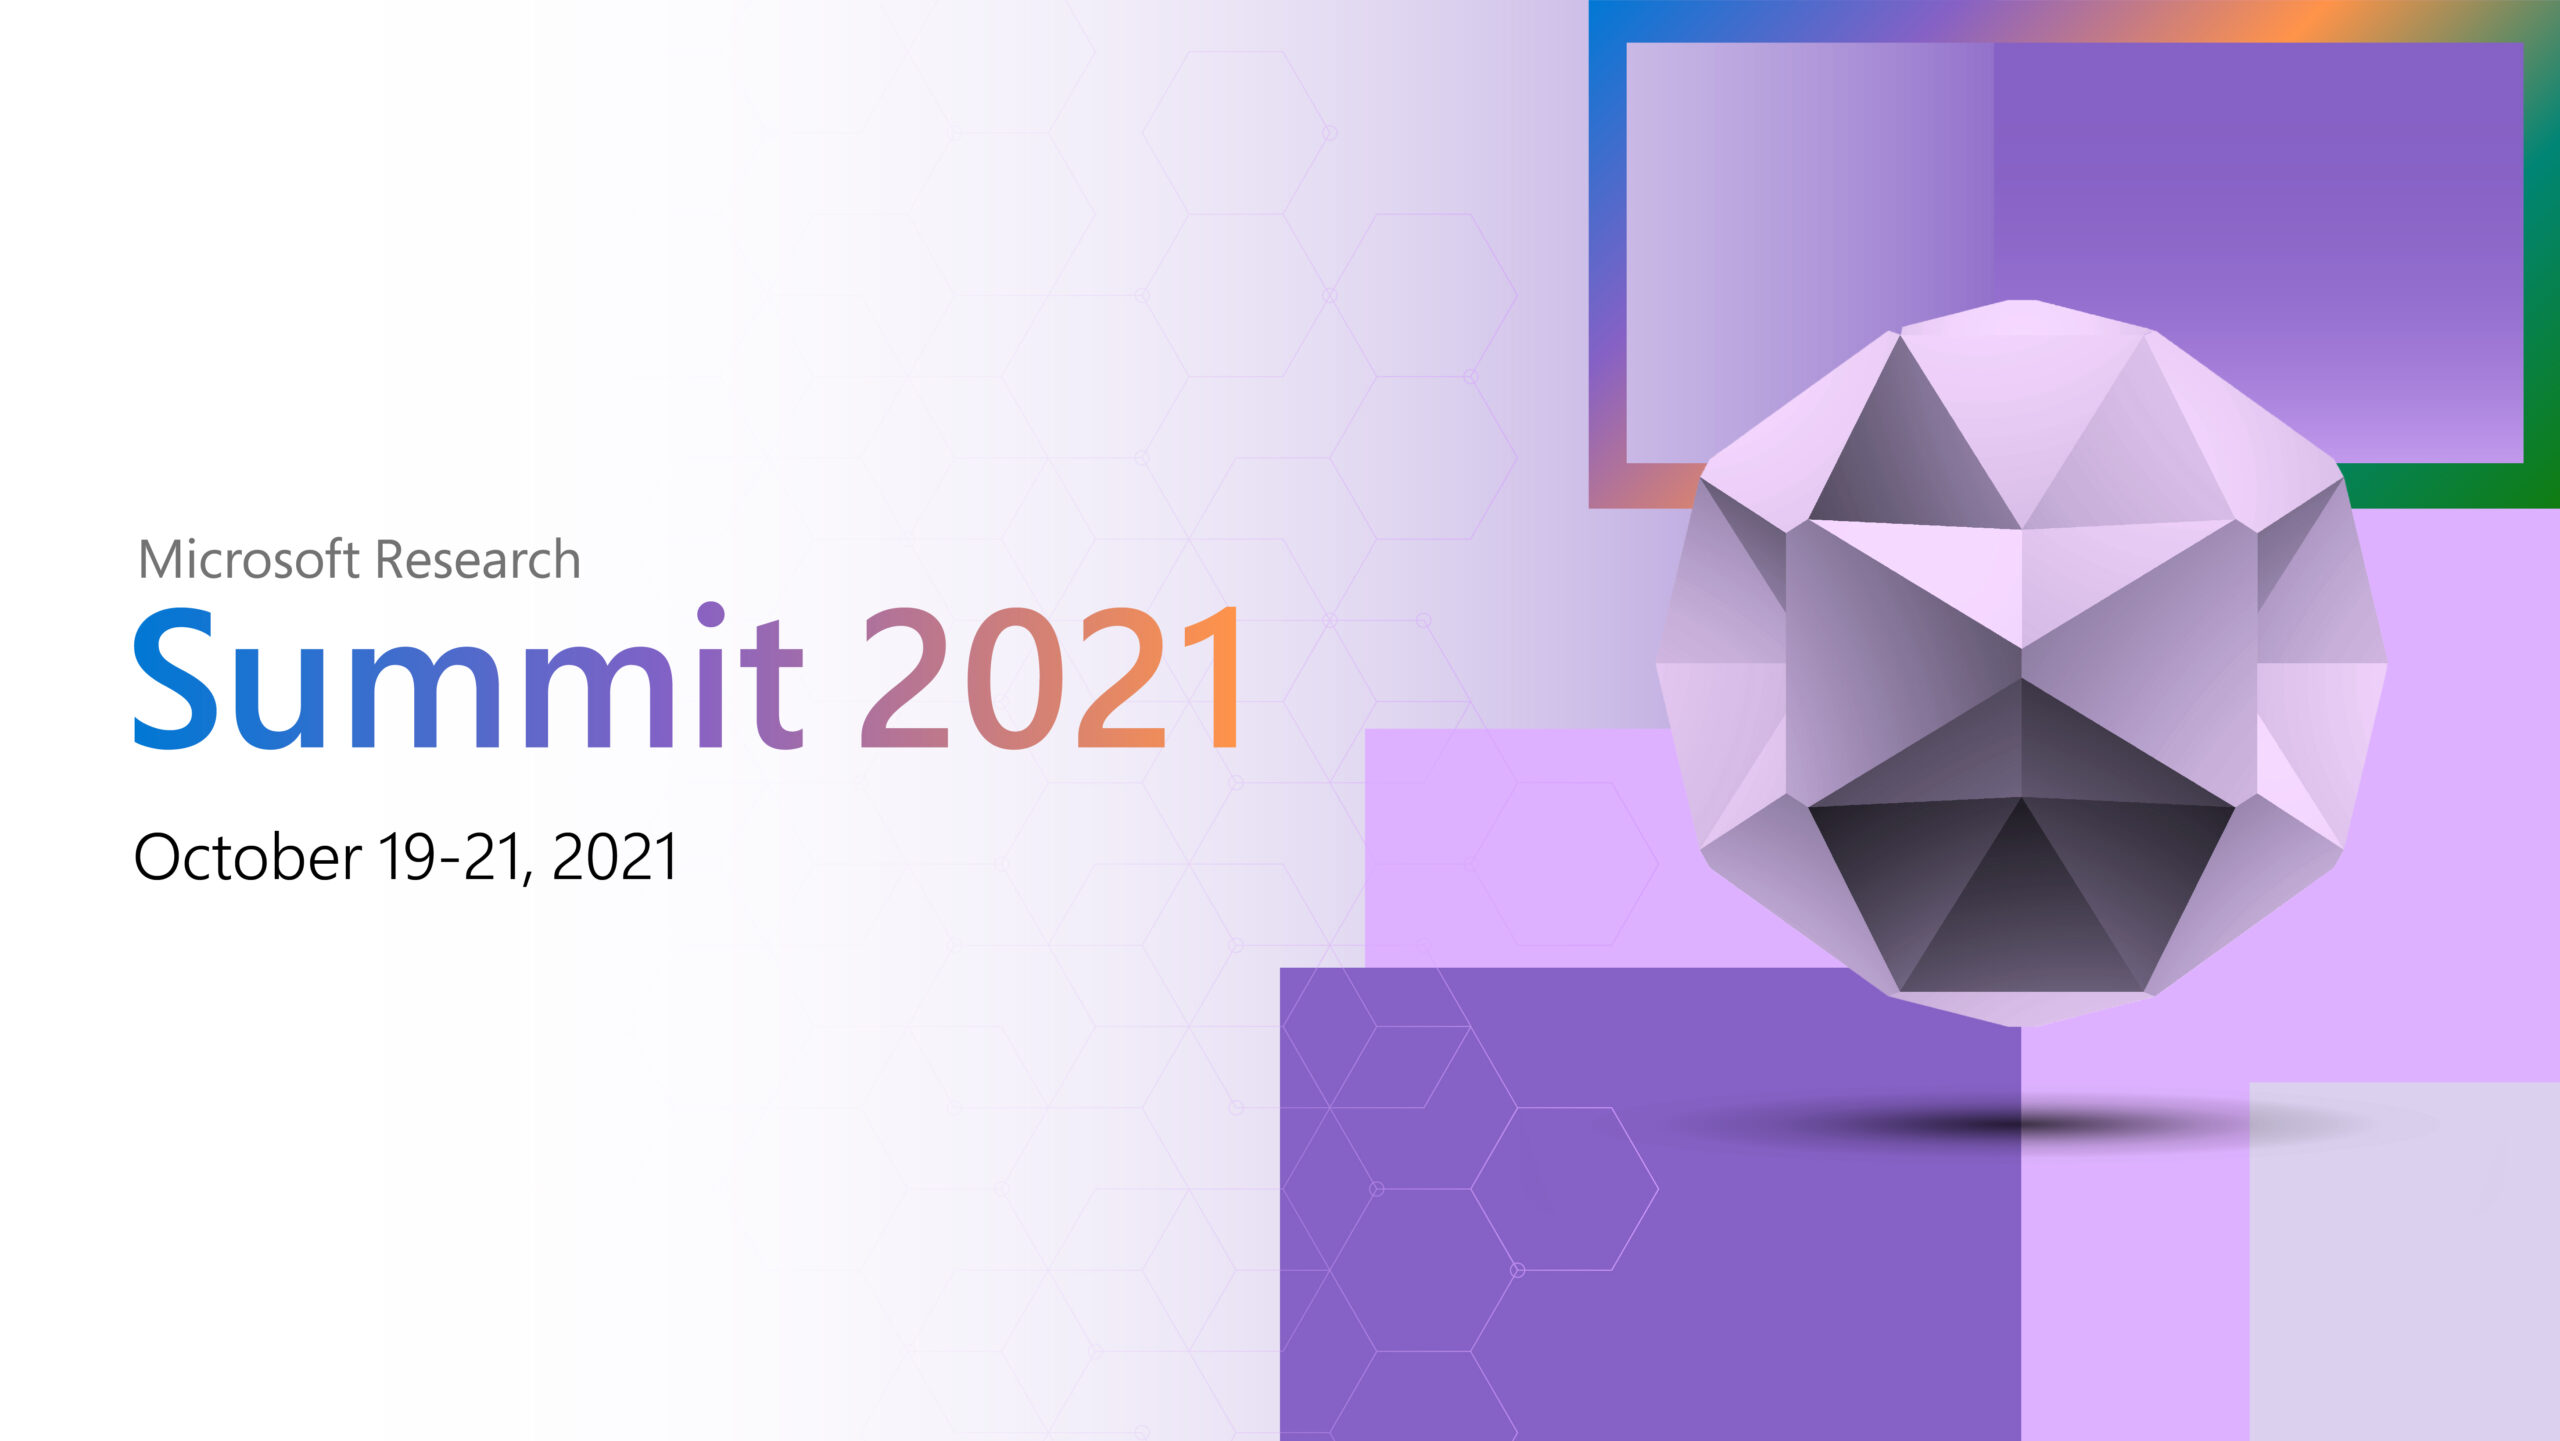 """Graphic shows abstract image of 3D shape and text displays """"Microsoft Research Summit 2021 October 19-21"""""""